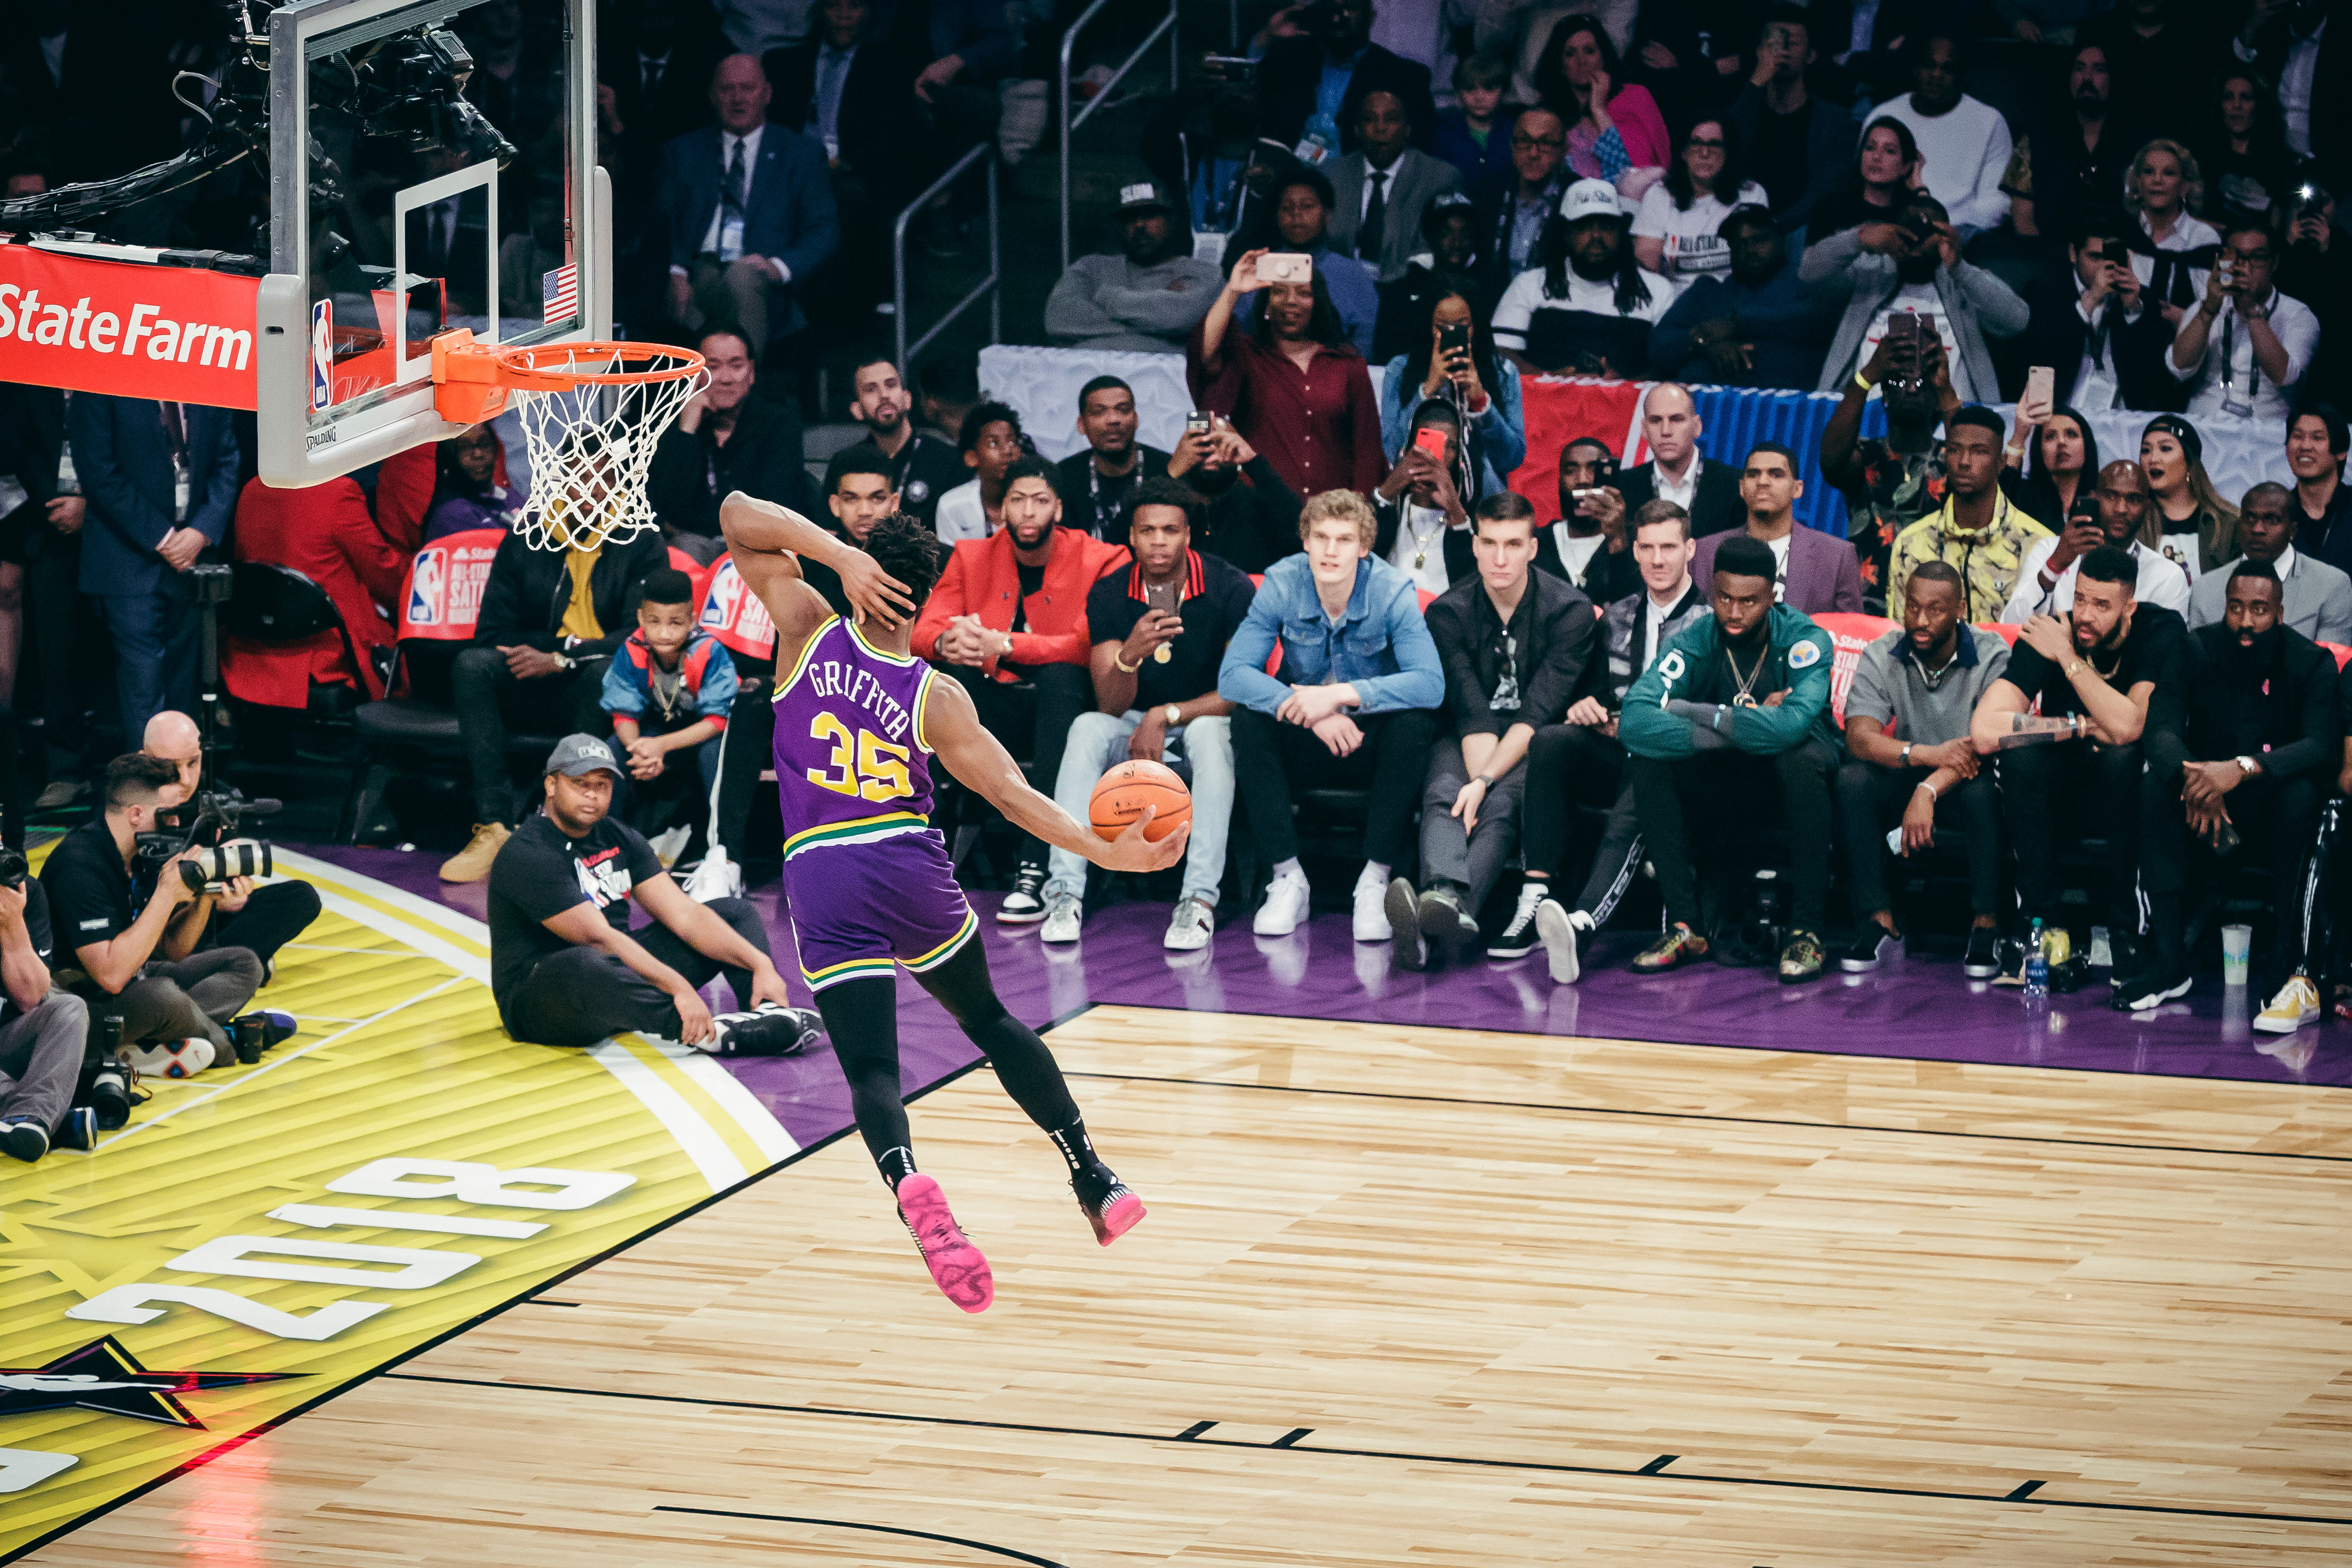 547abdda4 Day two at the 2018 NBA All-Star Weekend in Los Angeles. Donovan Mitchell  wears a jersey to pay tribute to former NBA player Darrell Griffith.